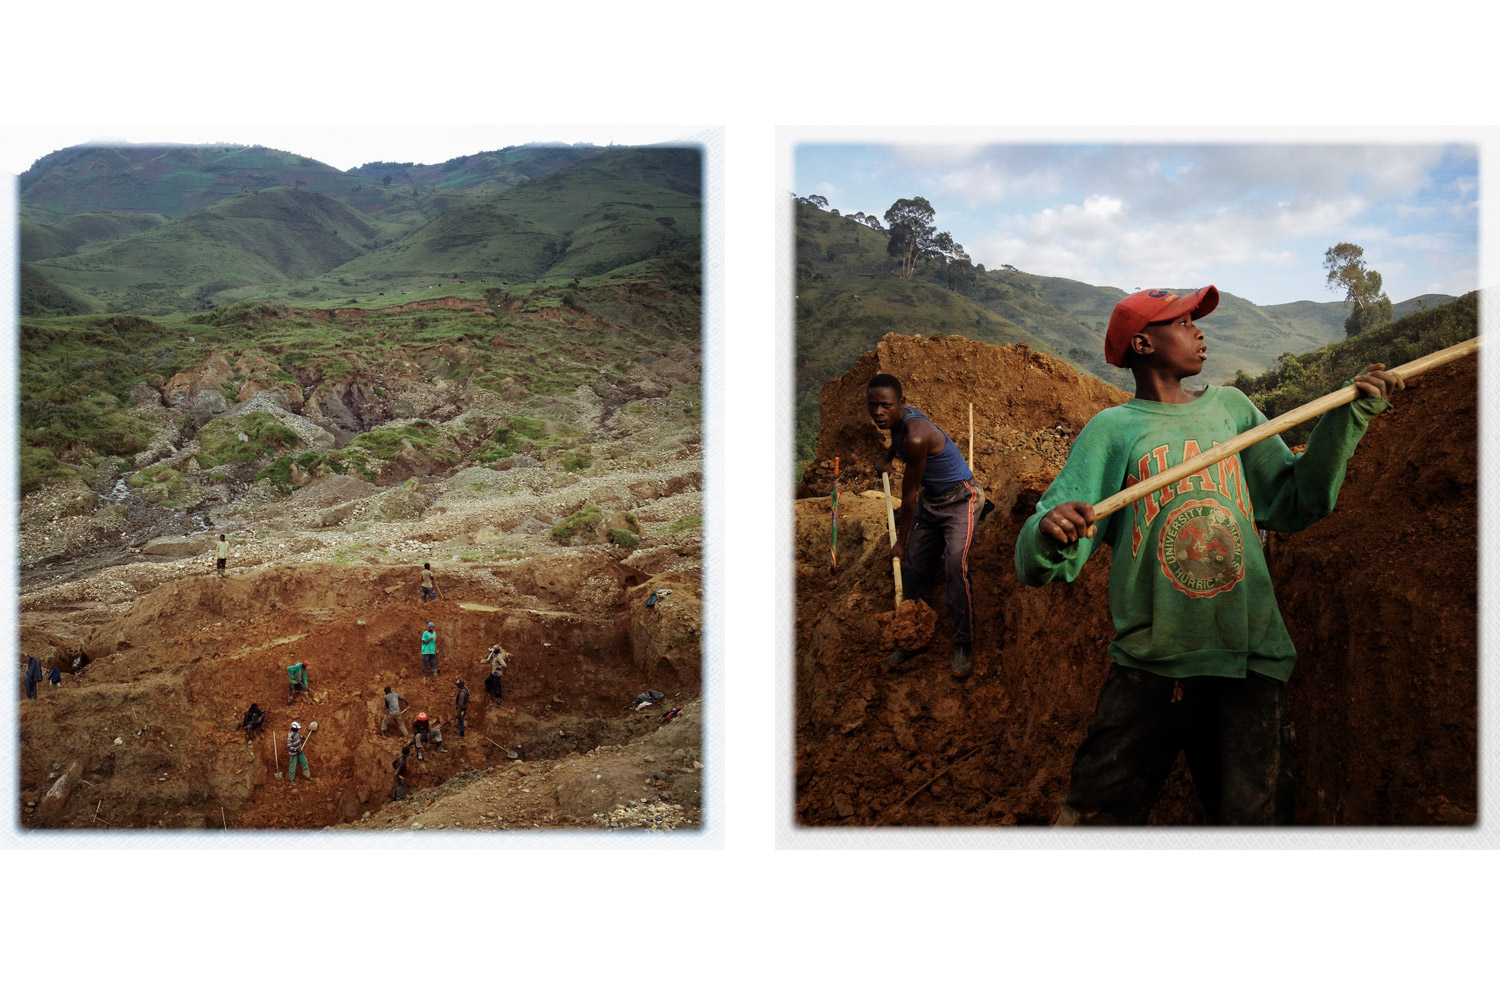 Children can be found working in some mines, but in isolated areas such as Numbi, they often have few better options.